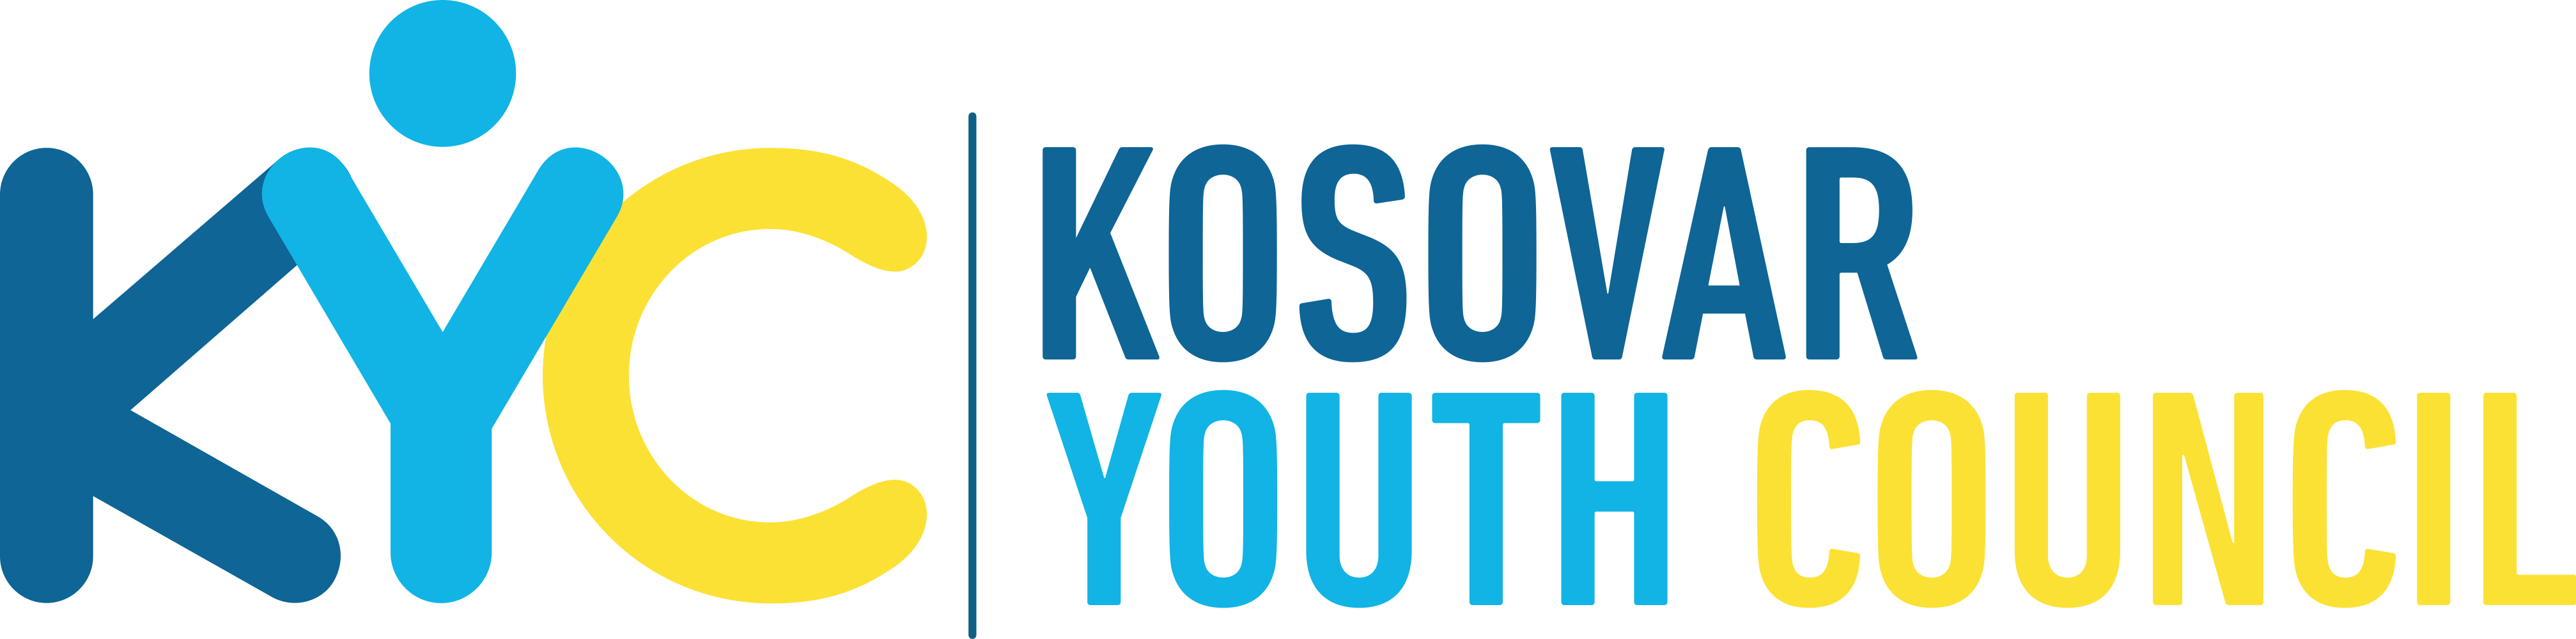 Kosovar Youth Council